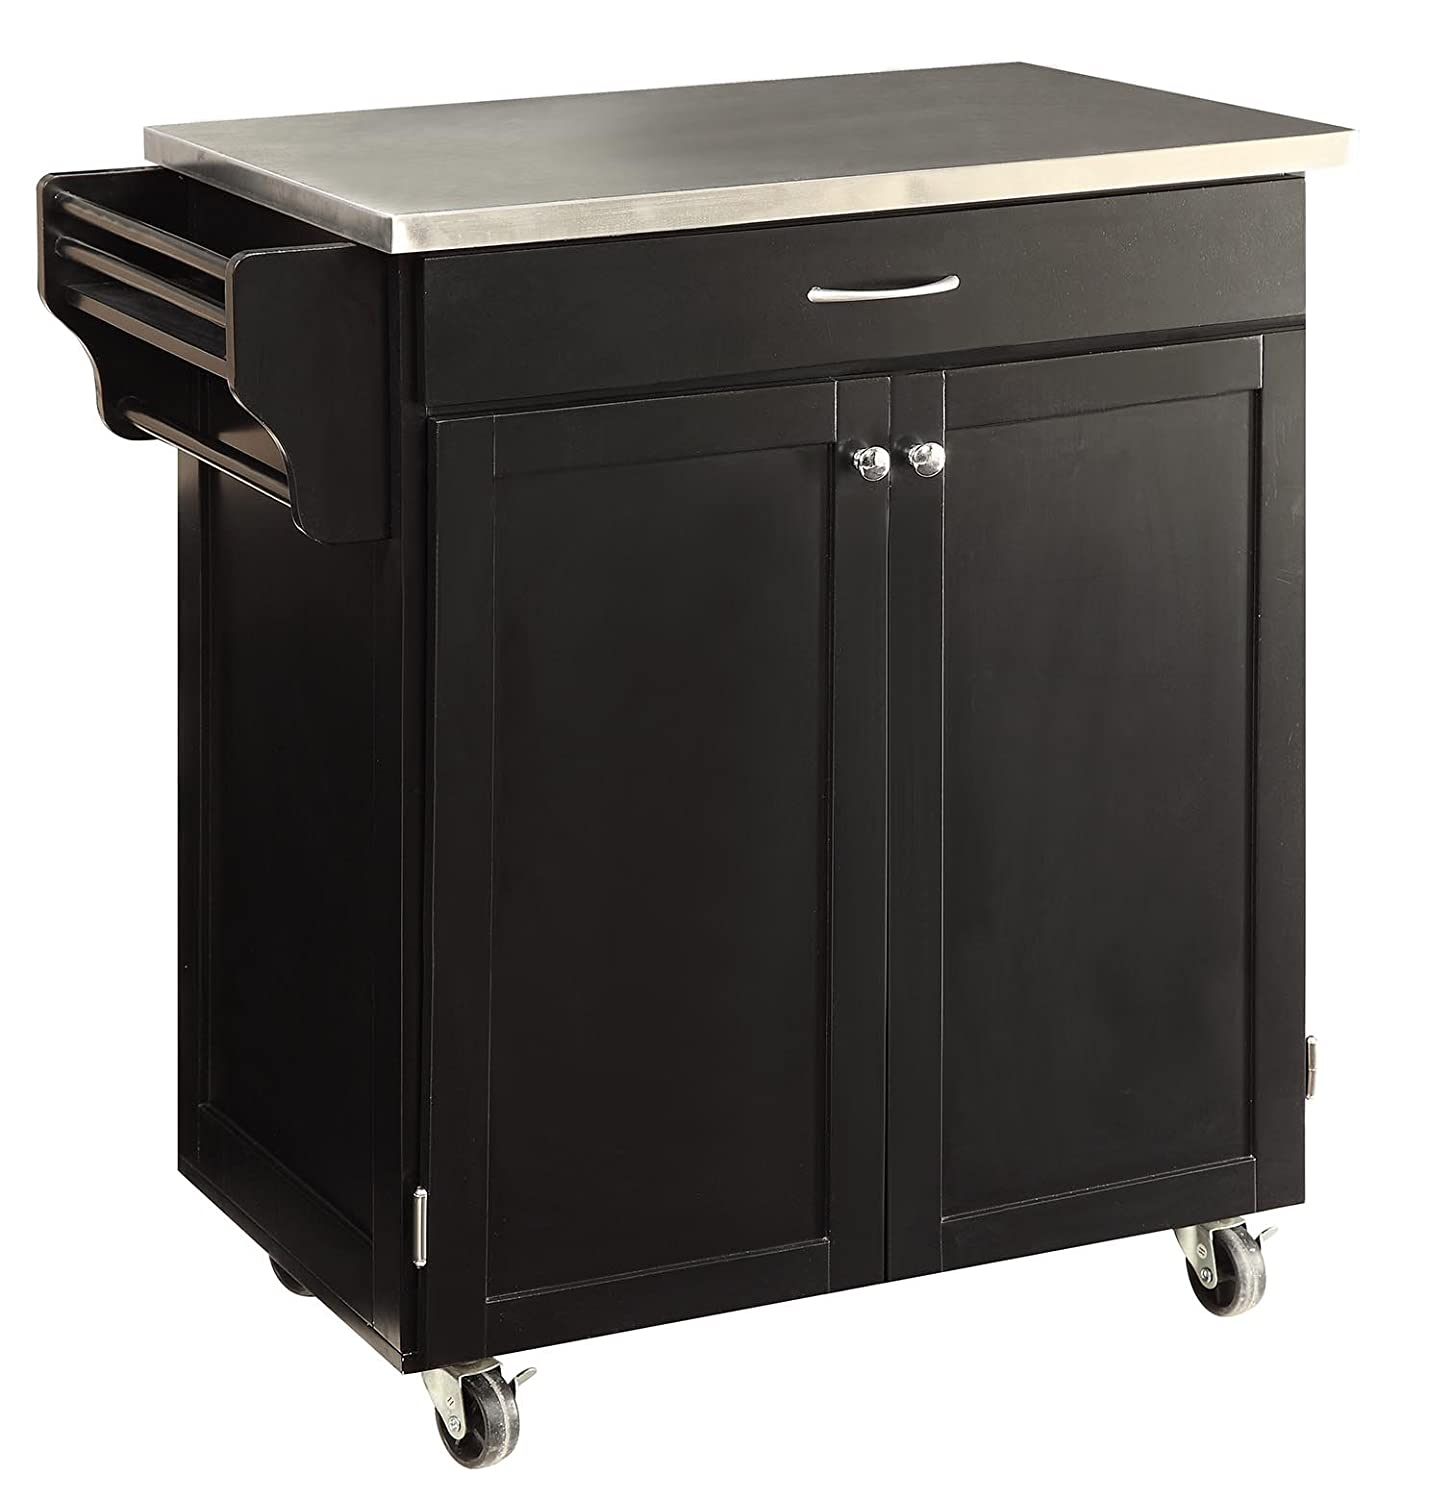 kitchen islands carts amazon com oliver and smith nashville collection mobile kitchen island cart on wheels black